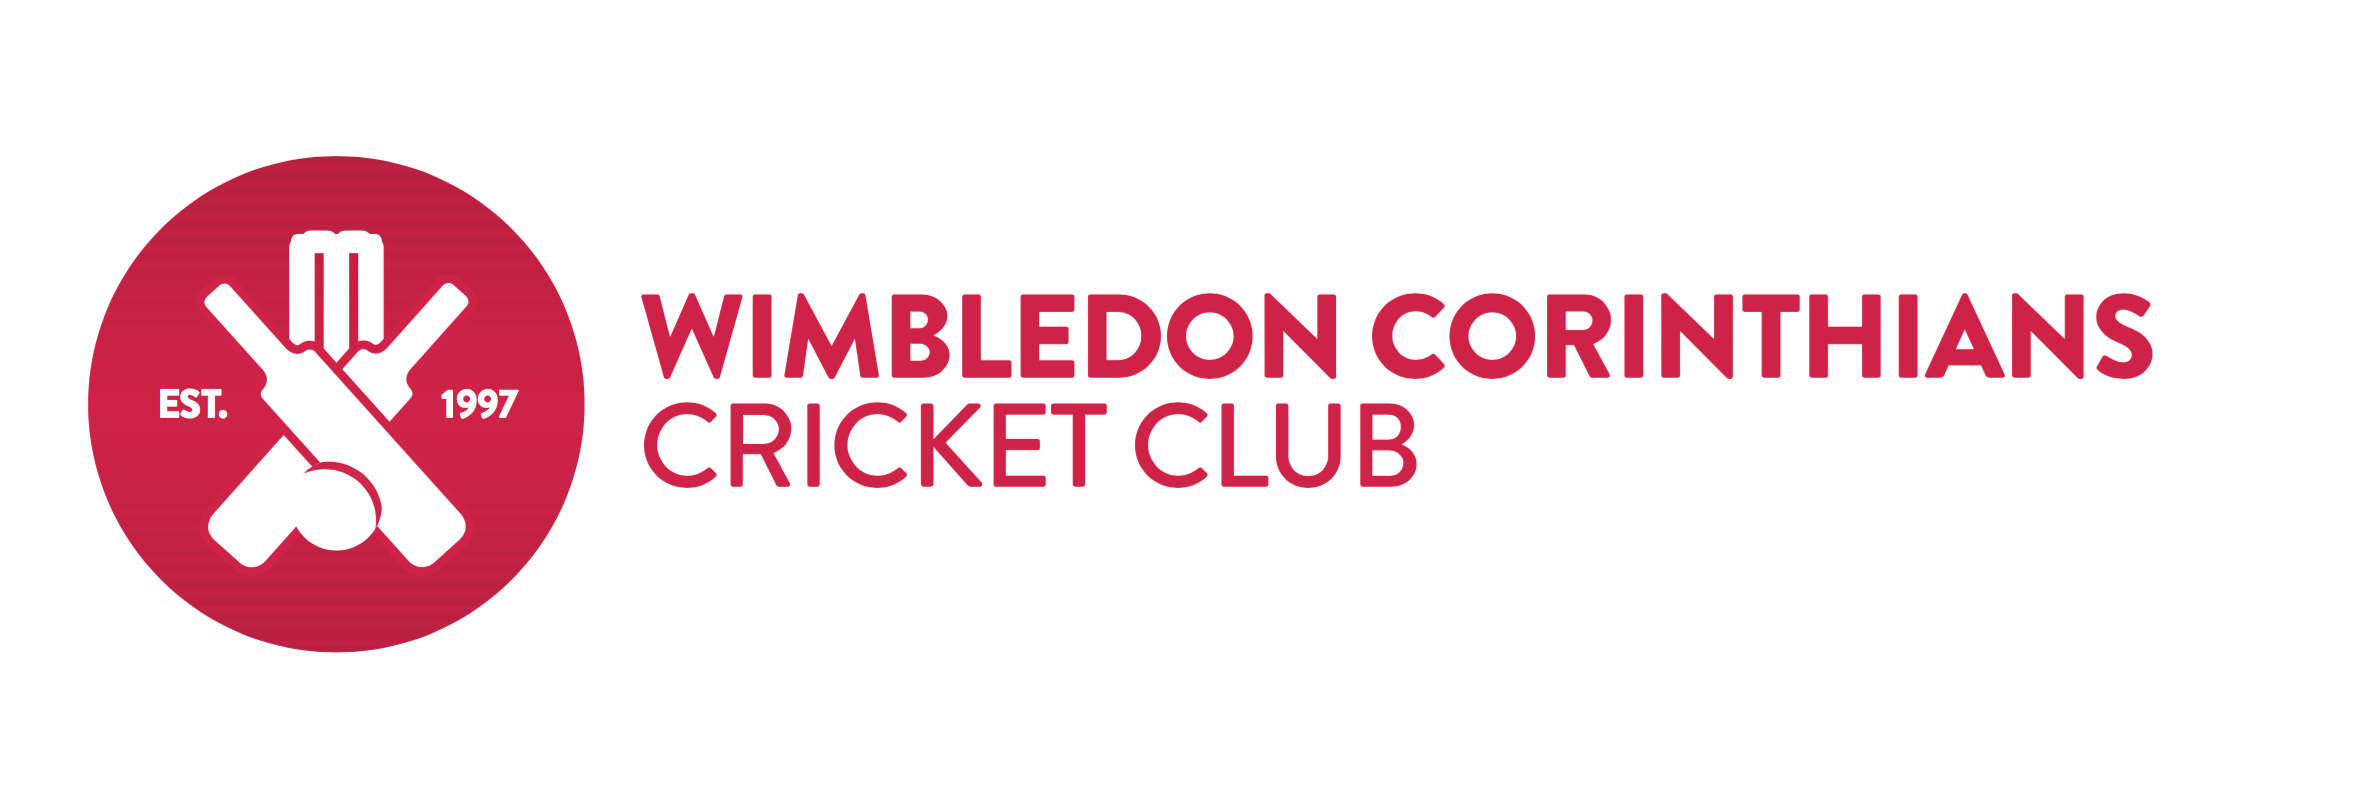 Wimbledon Corinthians Cricket Club